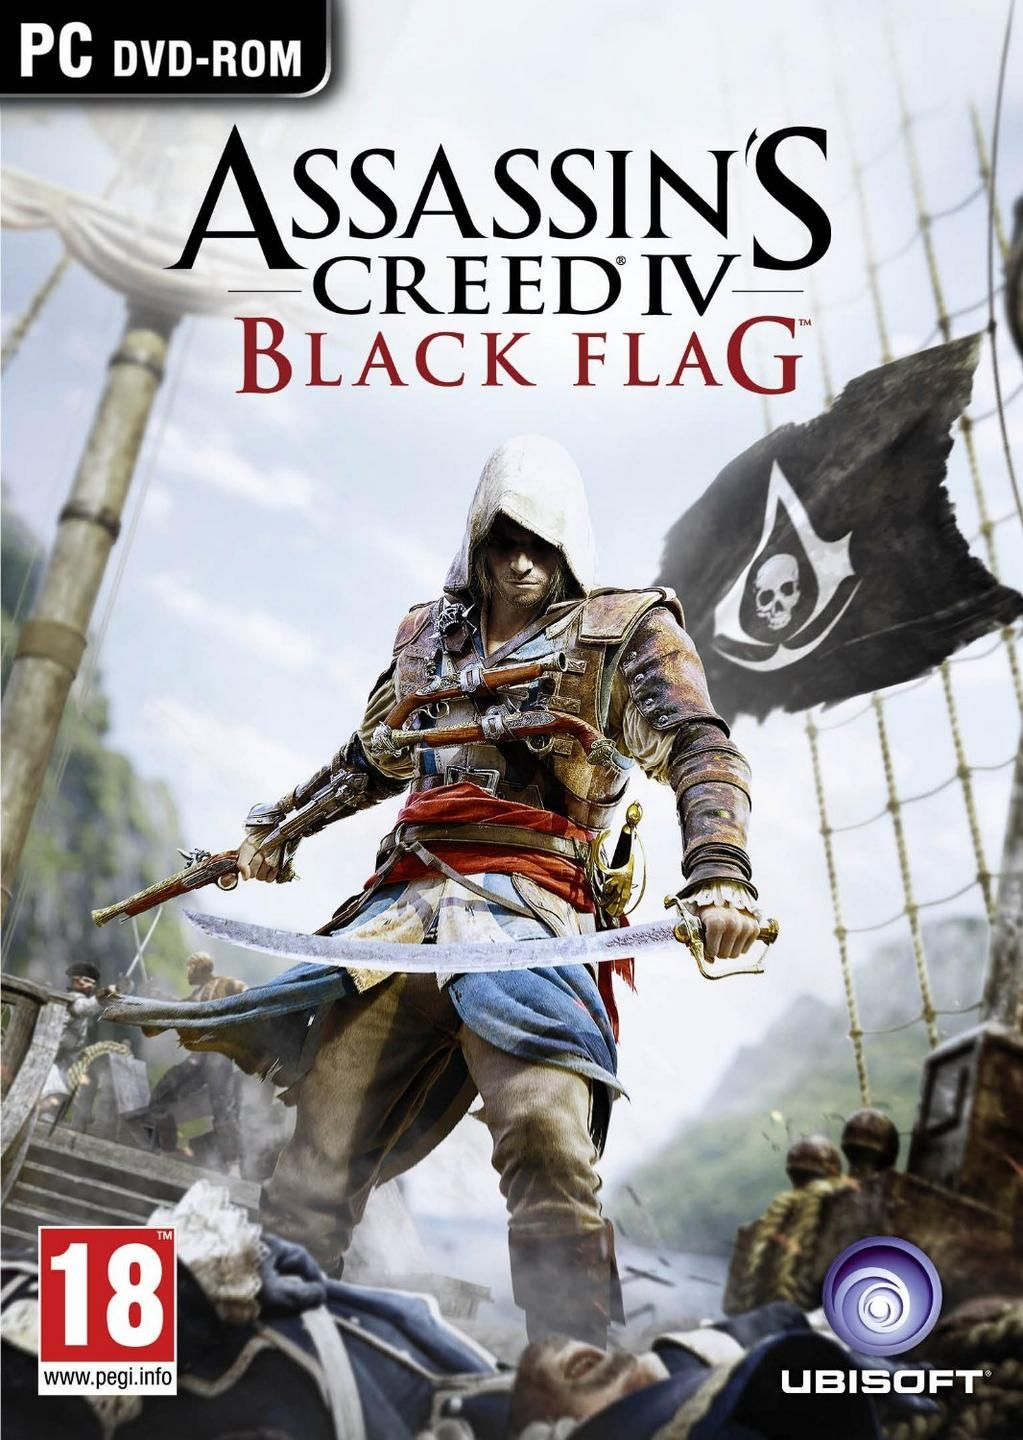 Gaming Deals Uk On Twitter Assassins Creed Black Flag Assassin S Creed Black Black Flag